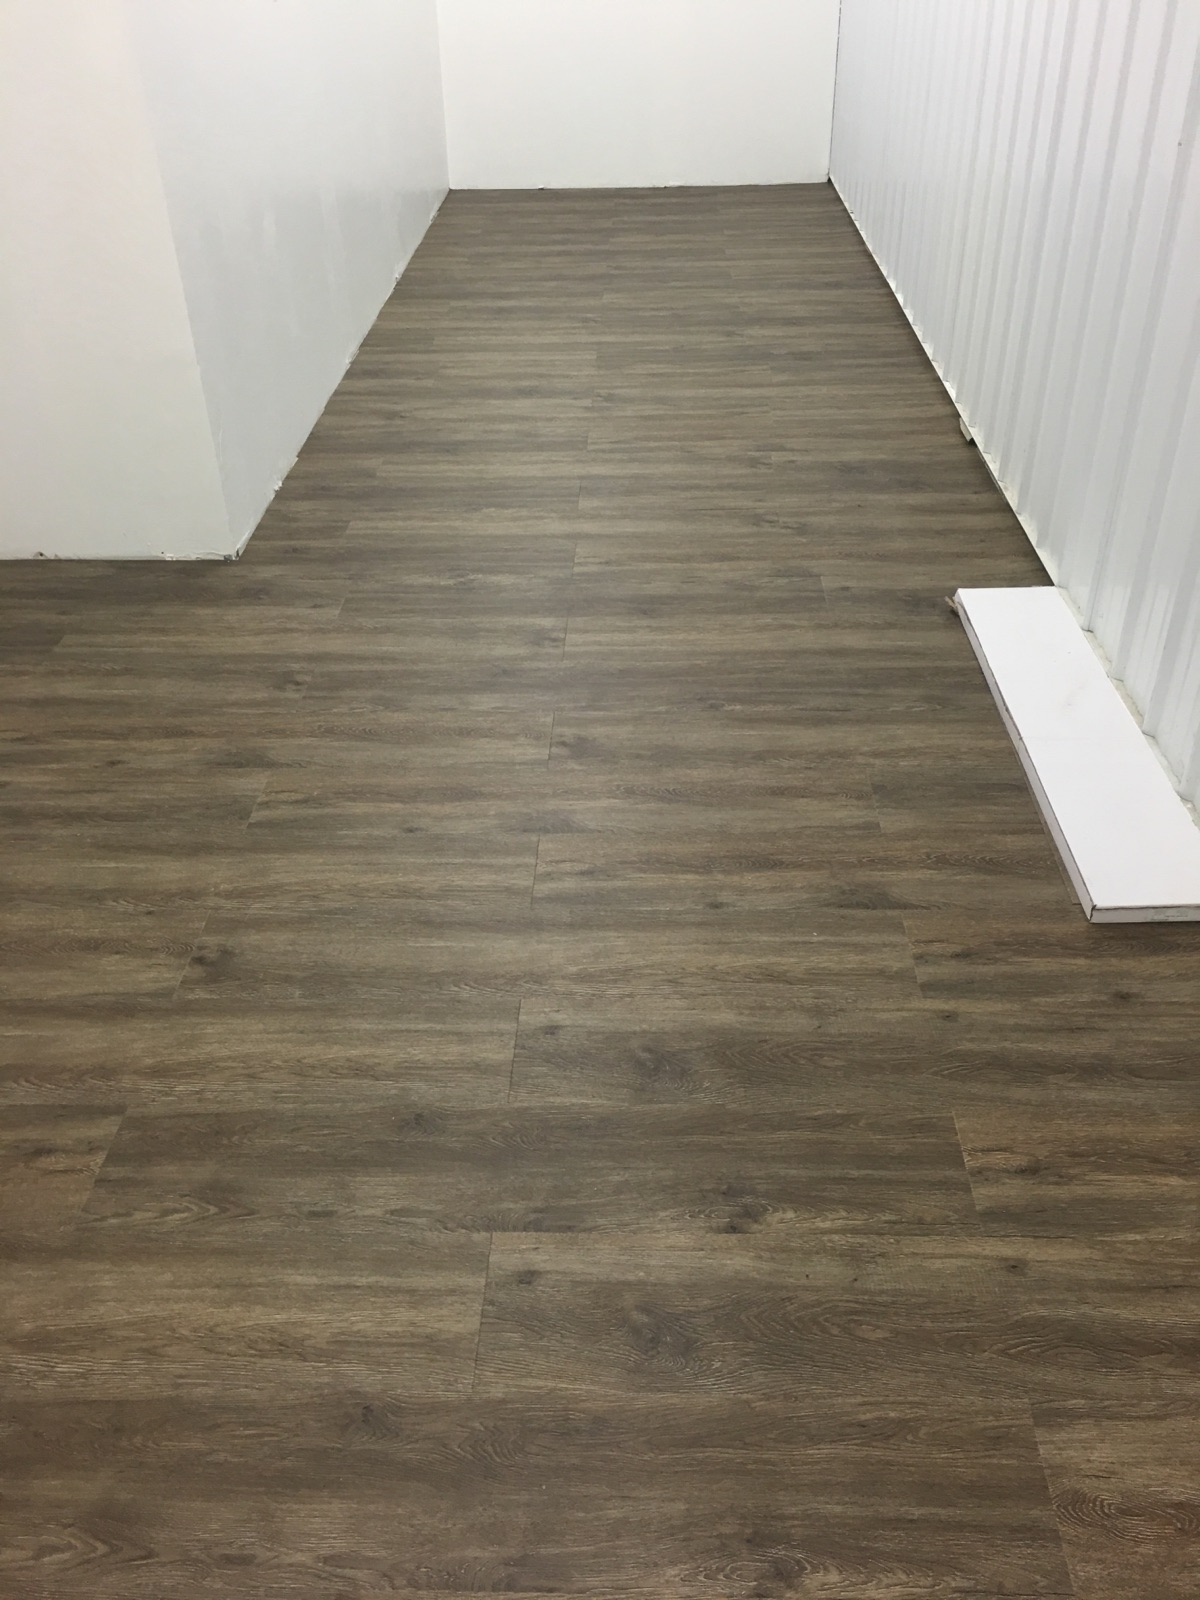 maryland flooring company shore side 020